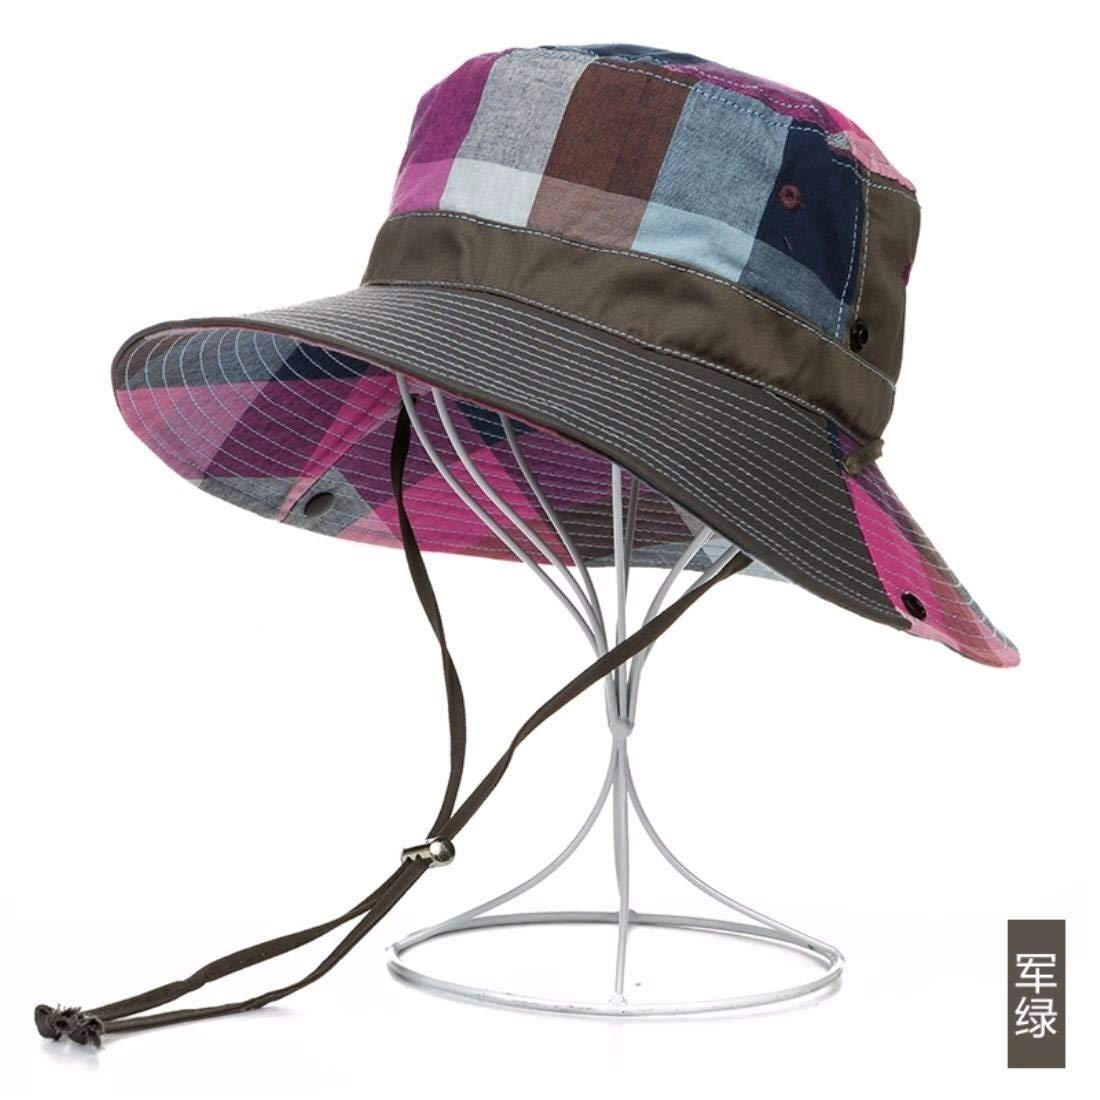 RUIFENGSTORE Sun Hat with Strap, Wide Brim Print Cap for Fishing Travel (Color : A, Size : M) by RUIFENGSTORE